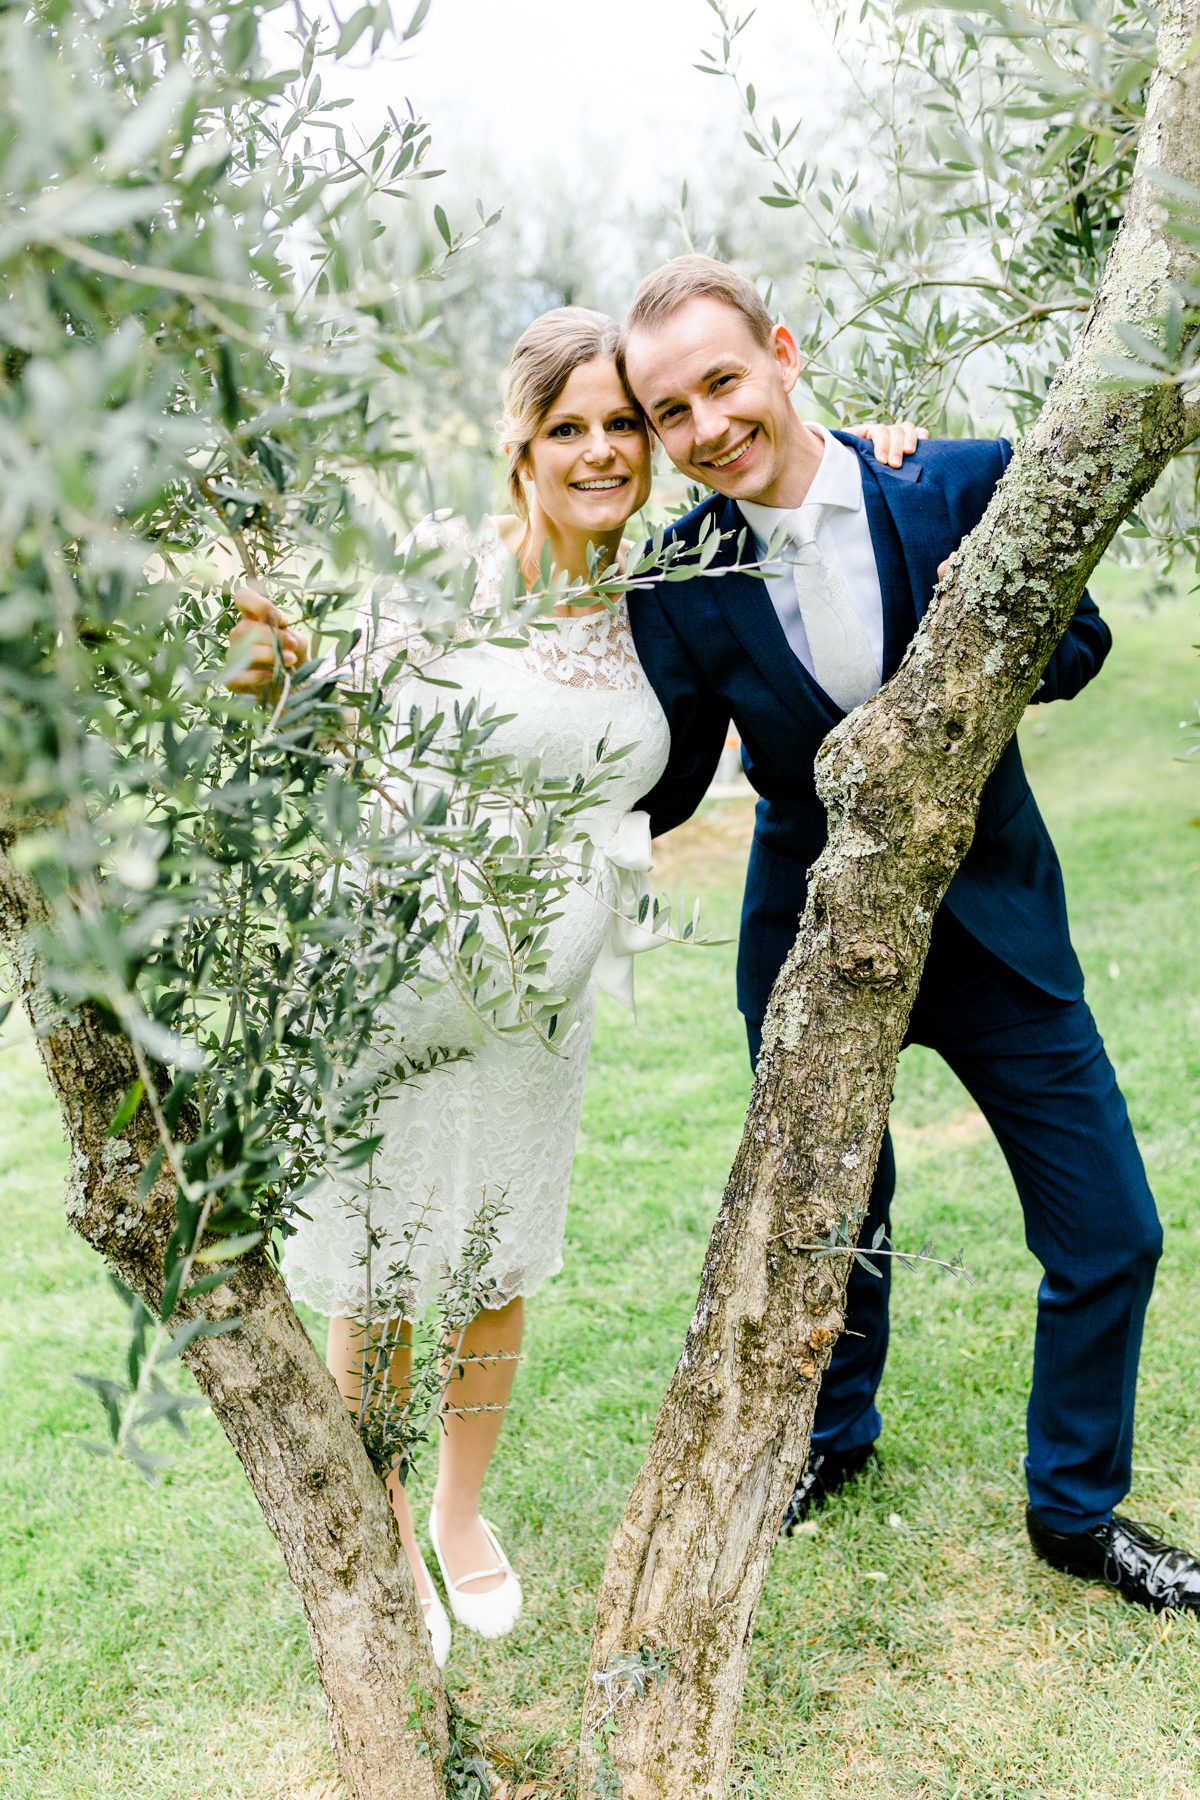 Romy_Alfons_Destination_Wedding_Tuscany_Toskana_Italy_me_him_photography-391